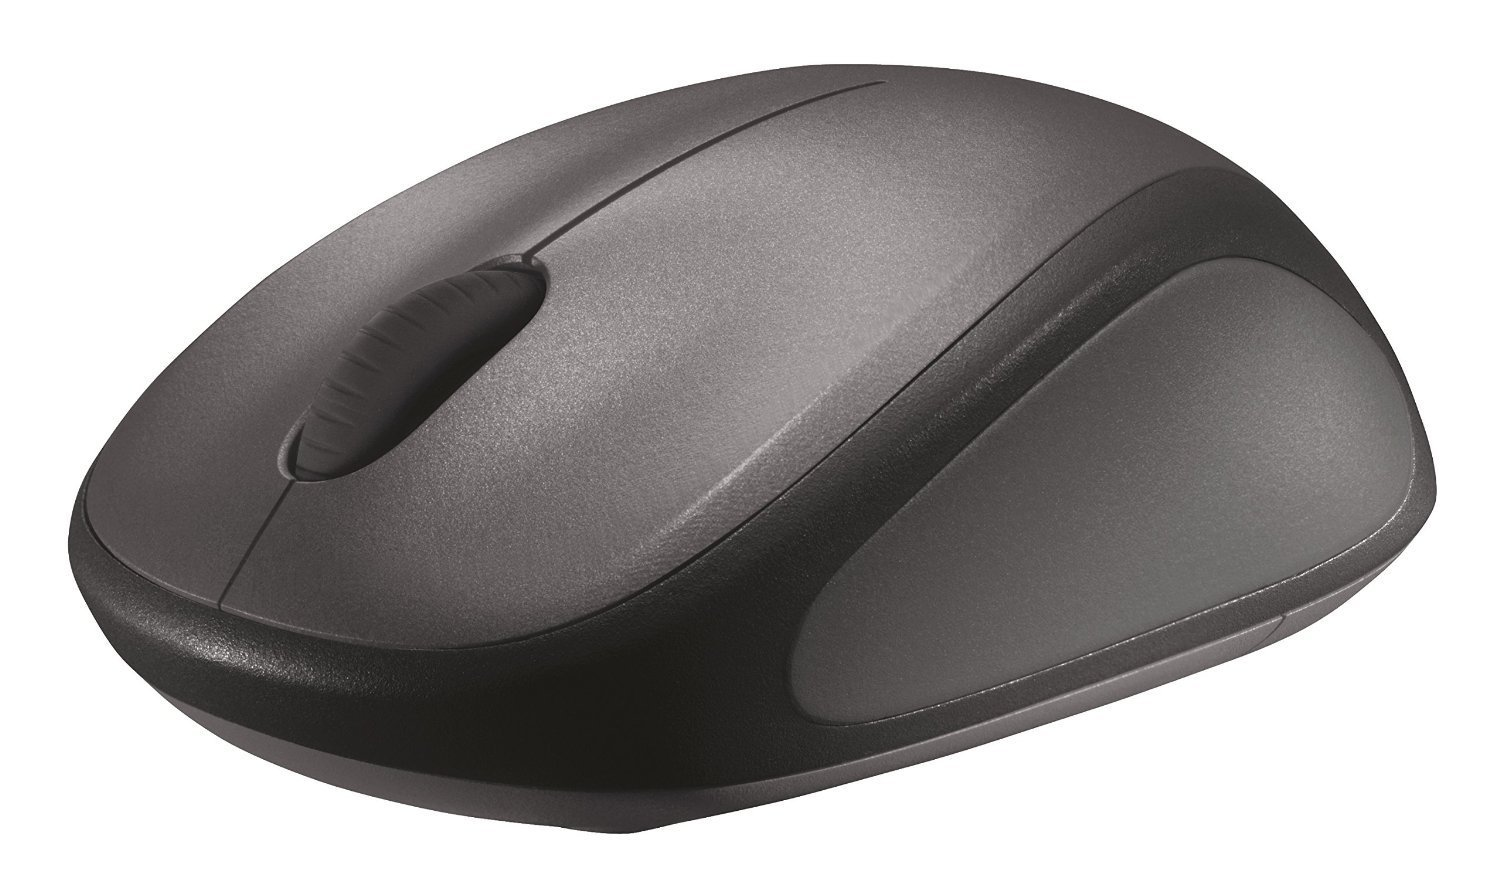 10 Best Wireless Mouse In India 2019